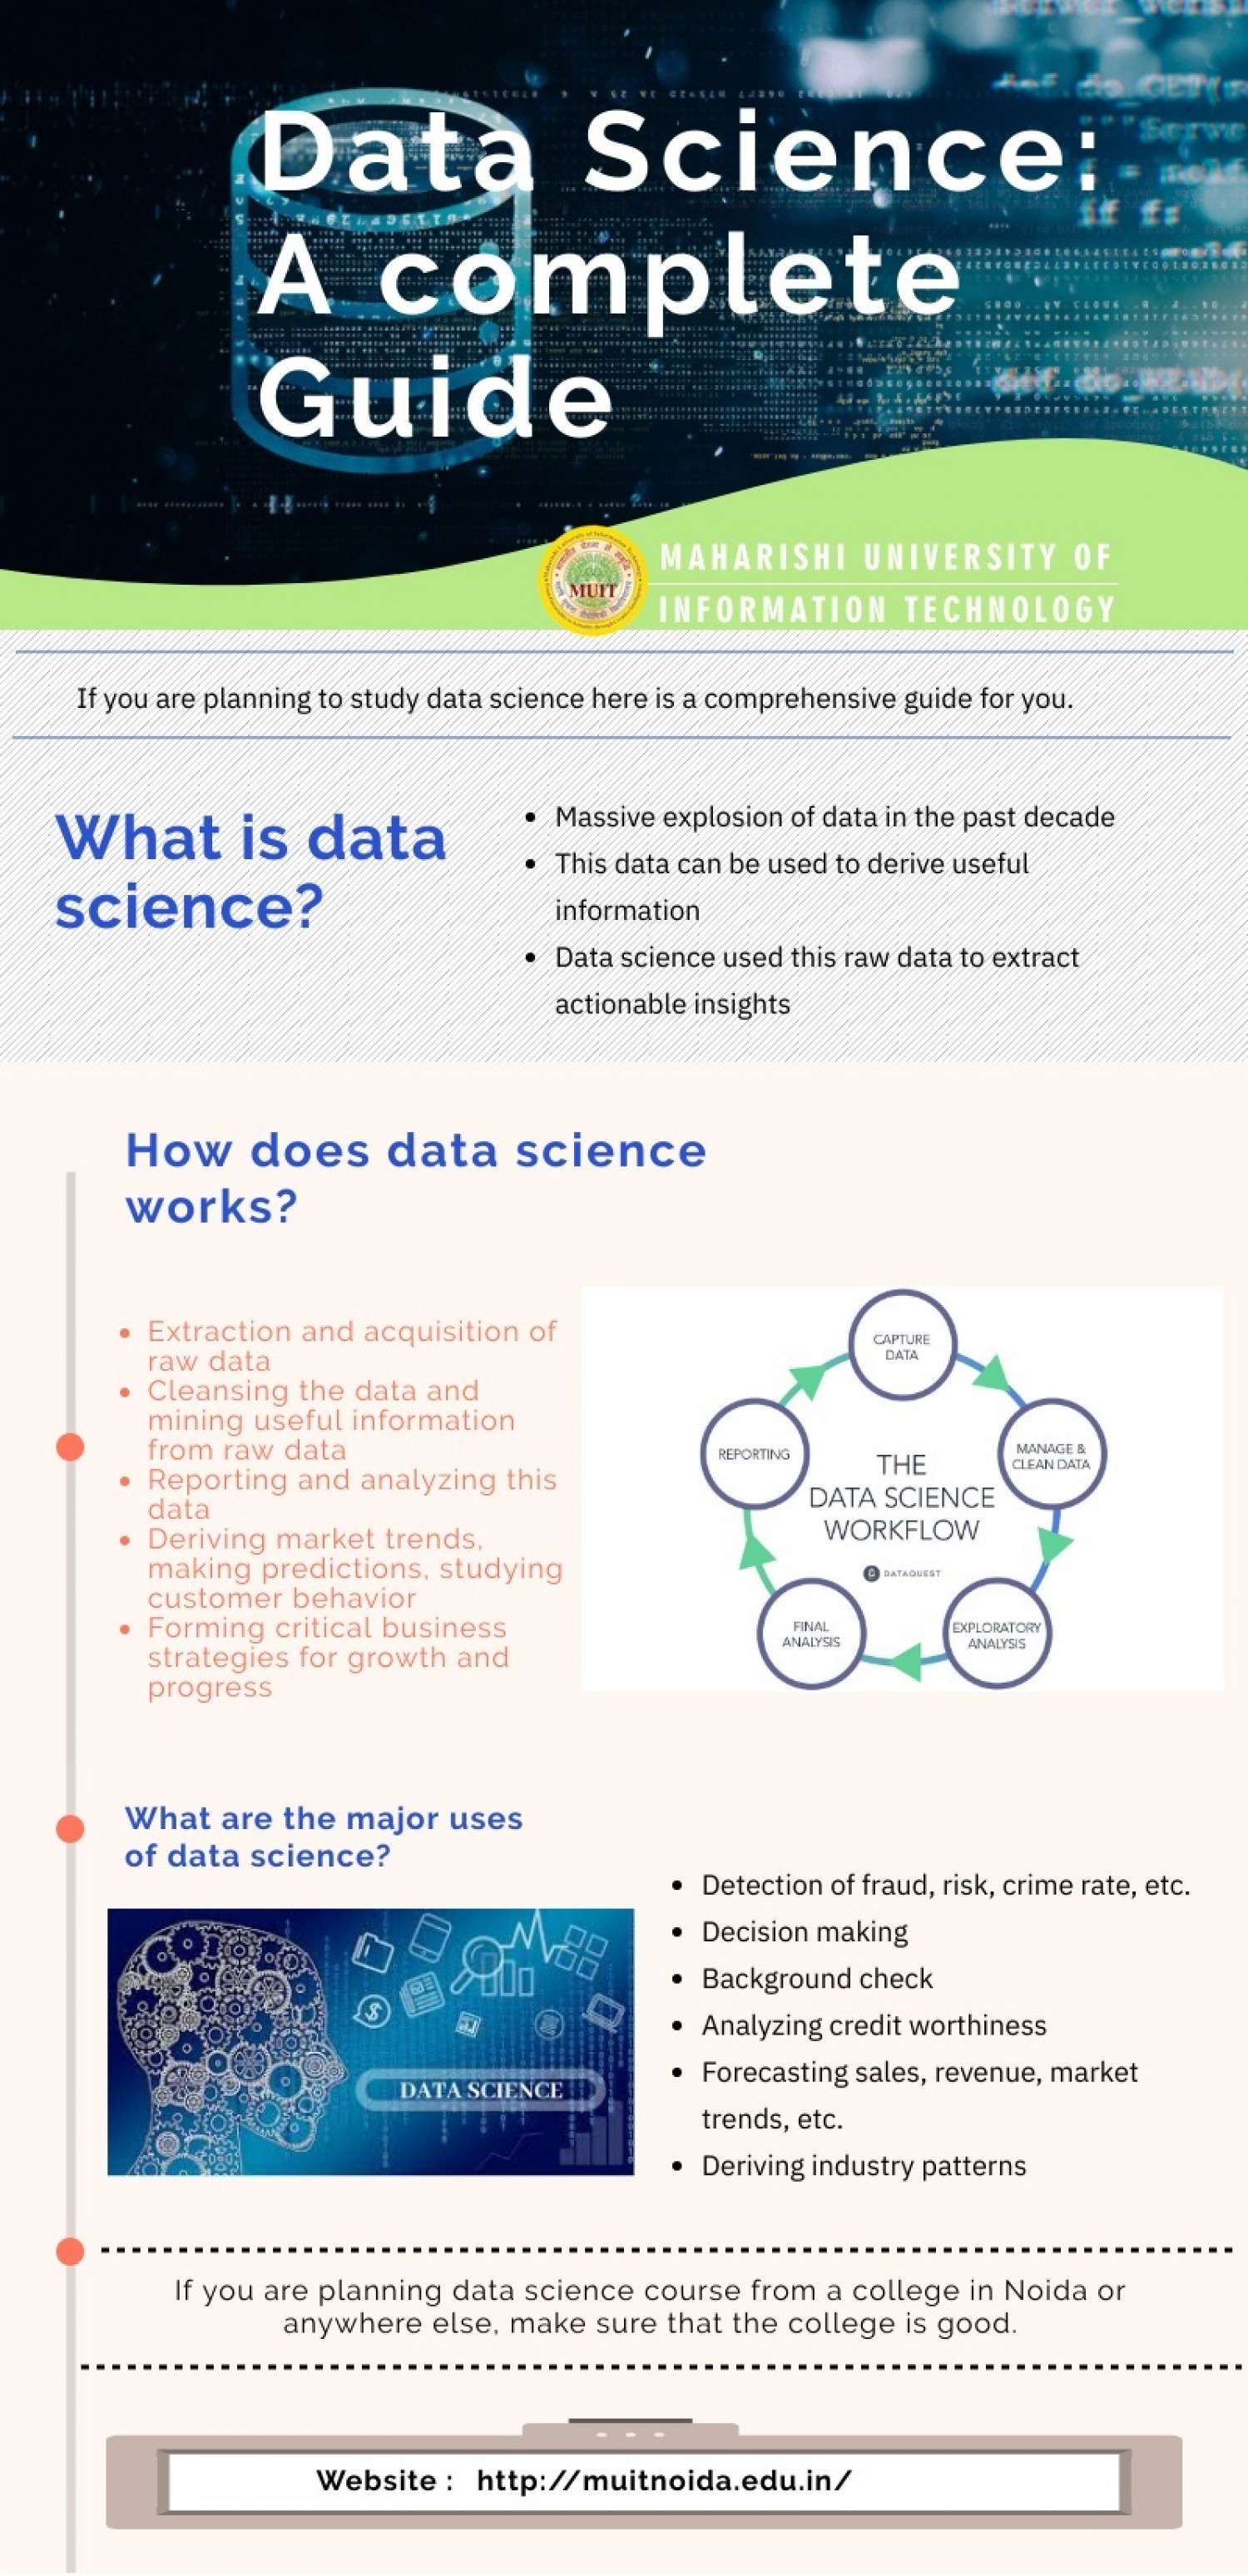 Title: Data Science: A complete Guide Infographic